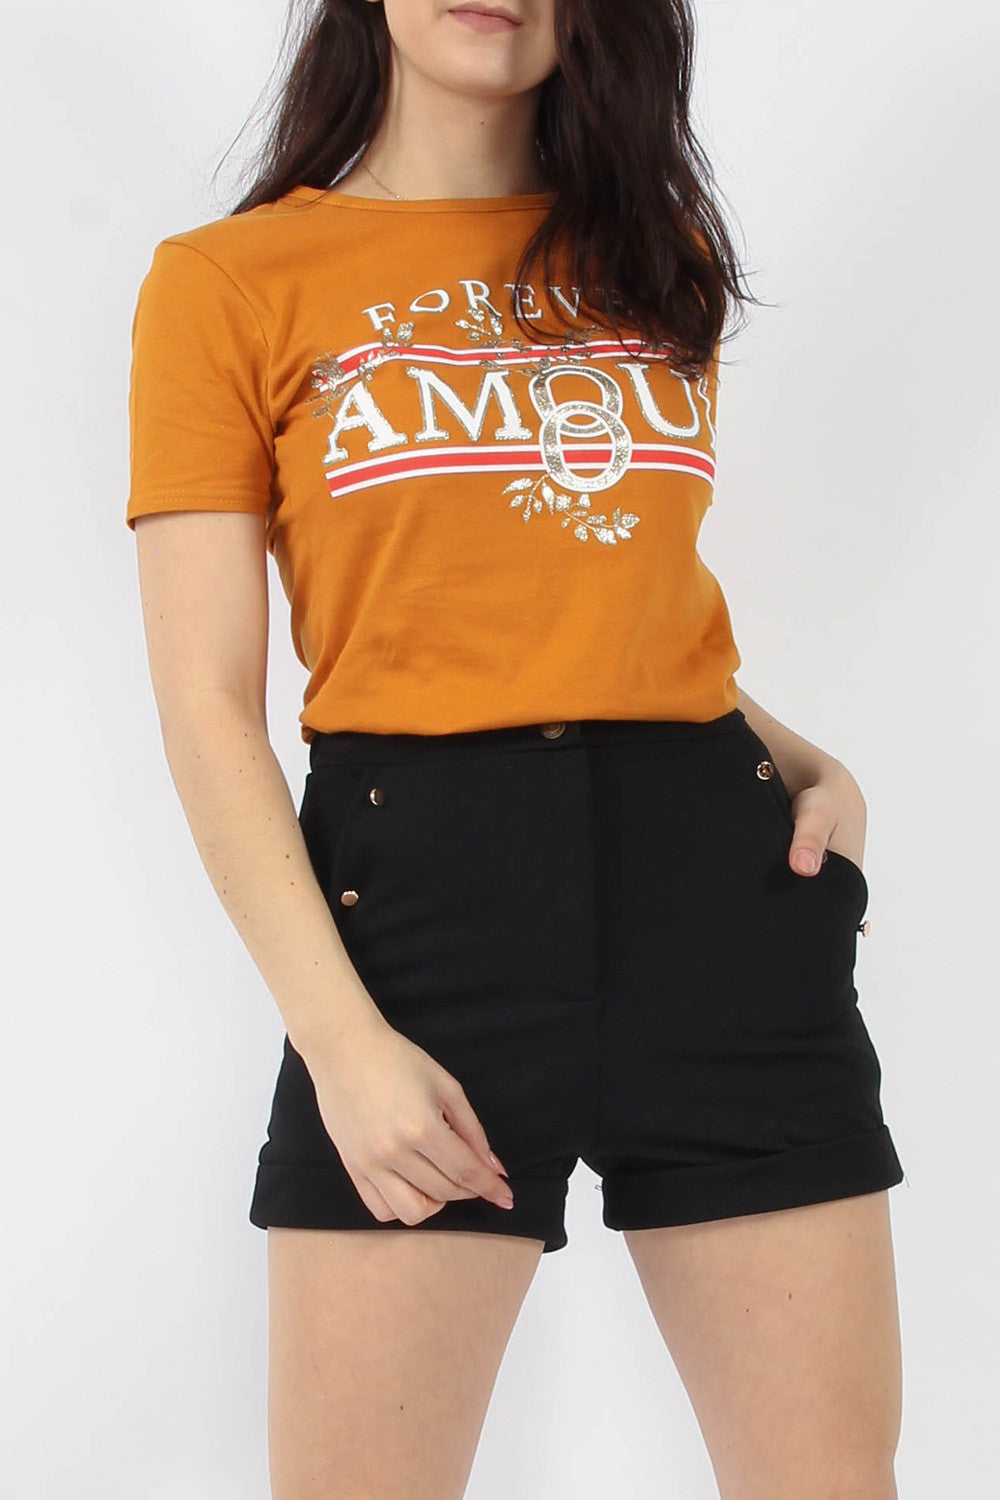 AMELIA FOREVER AMOUR PRINTED T-SHIRT- MUSTARD